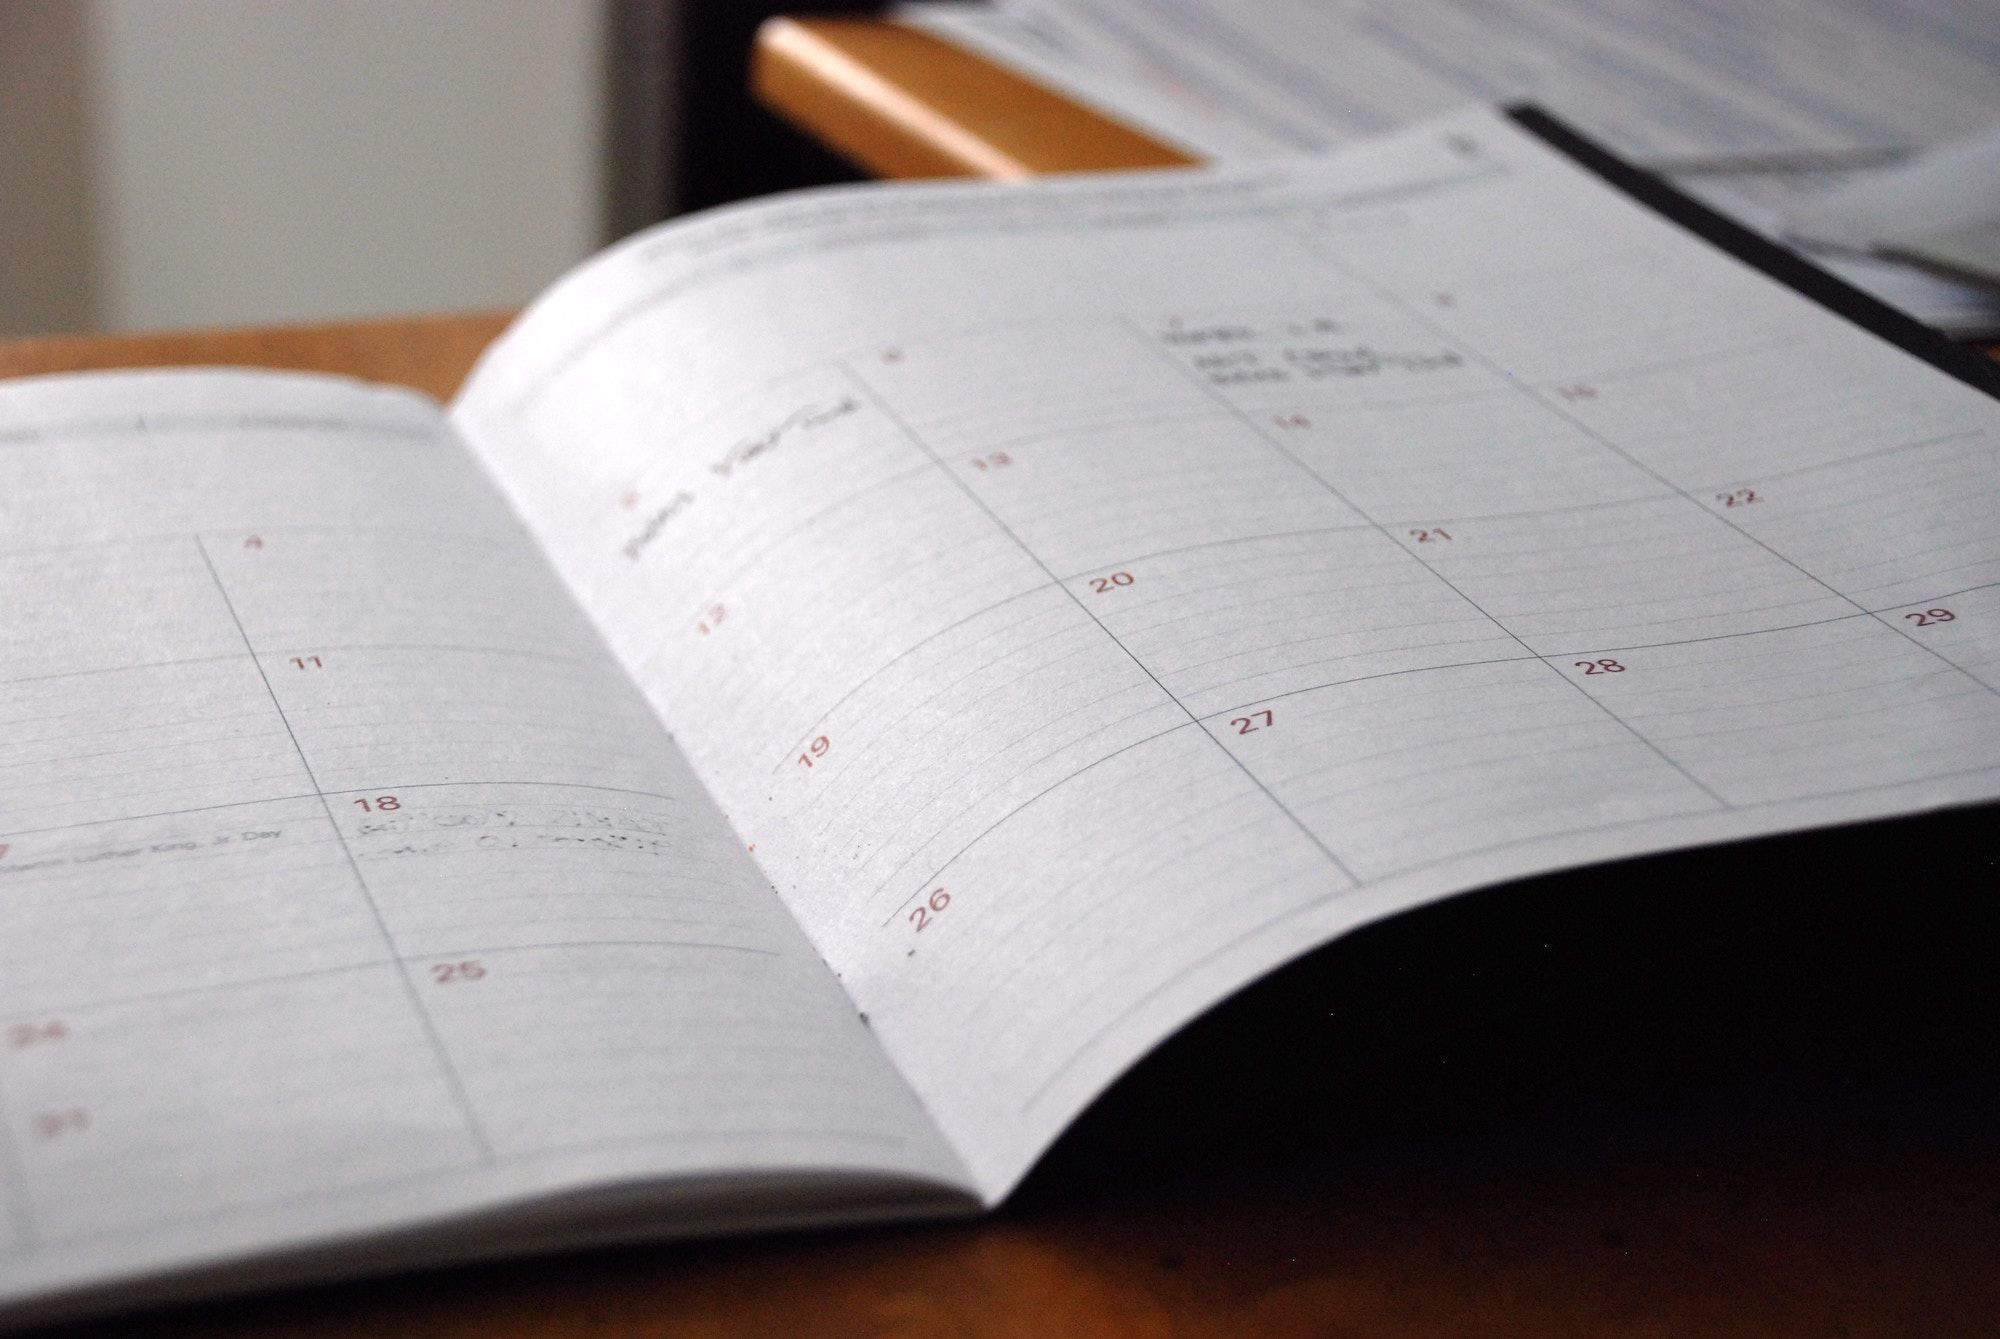 Why You Should Plan Your Day by Priorities — Not Time